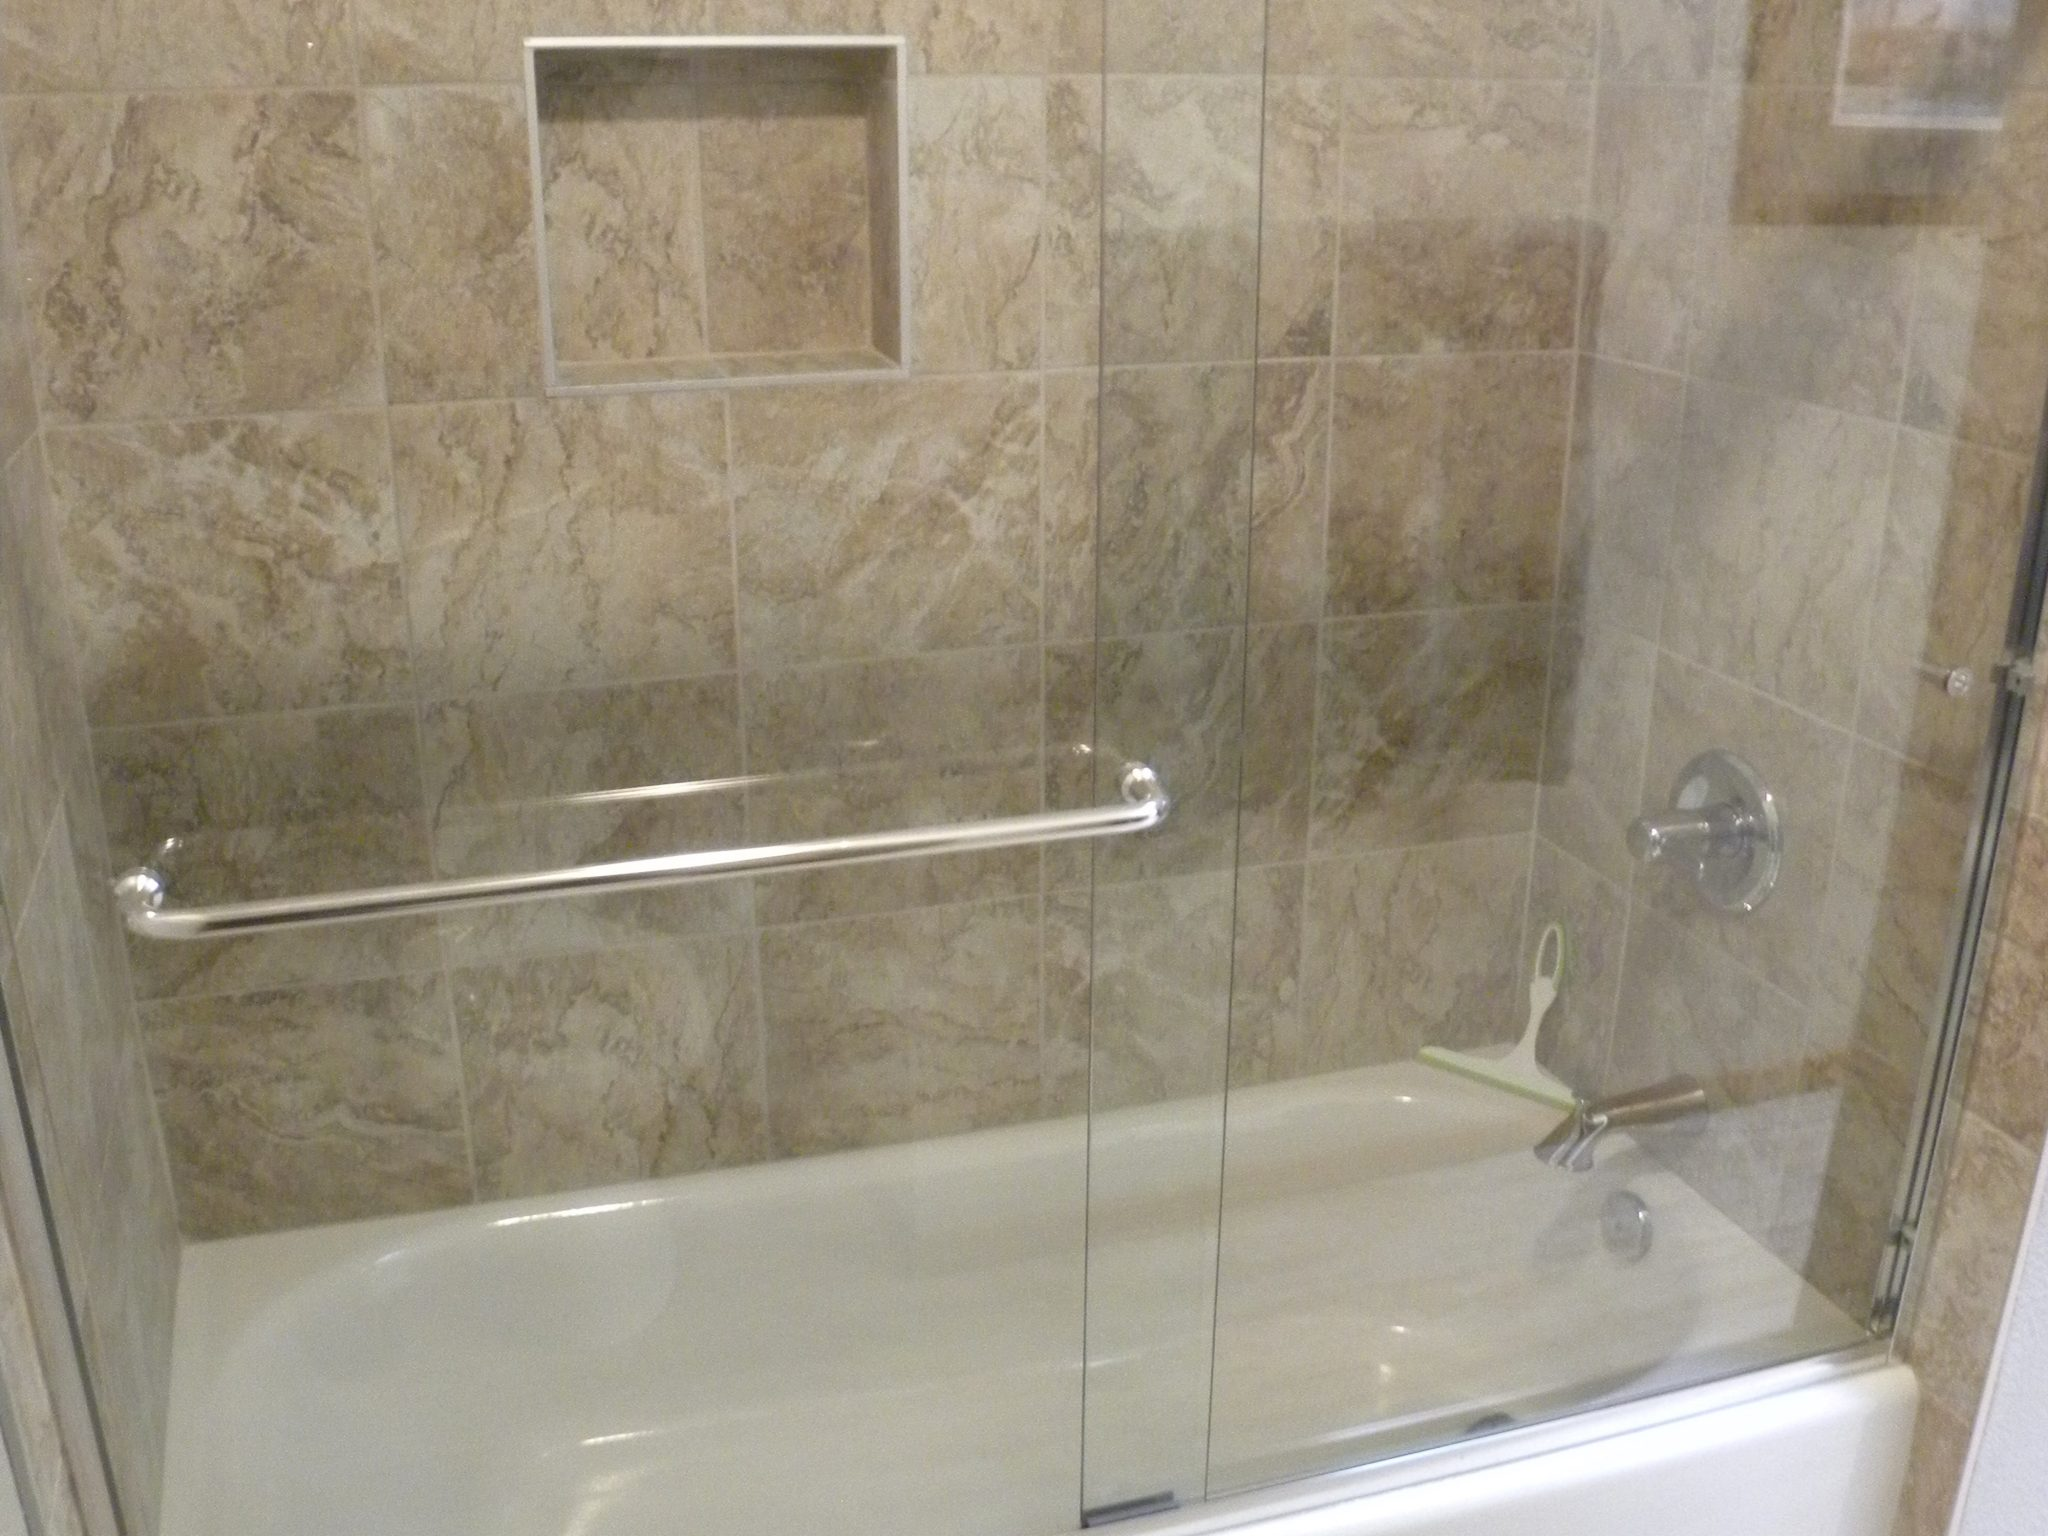 Interior shot of a newly remodeled custom shower with tan tiling and glass windows